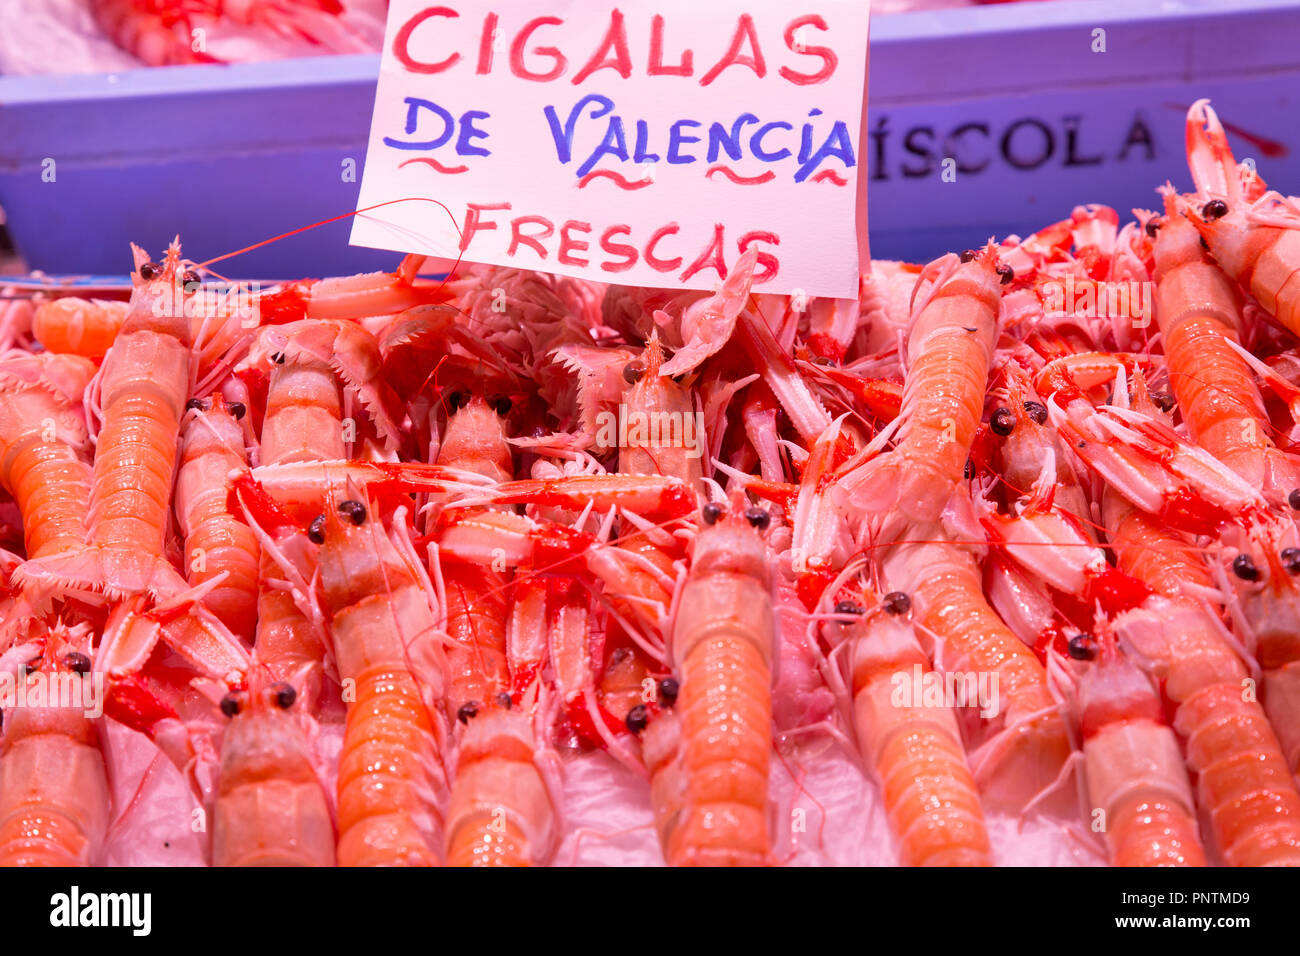 Cigalas langoustines in Mercat Central, the central market in Valencia city, Spain - Stock Image